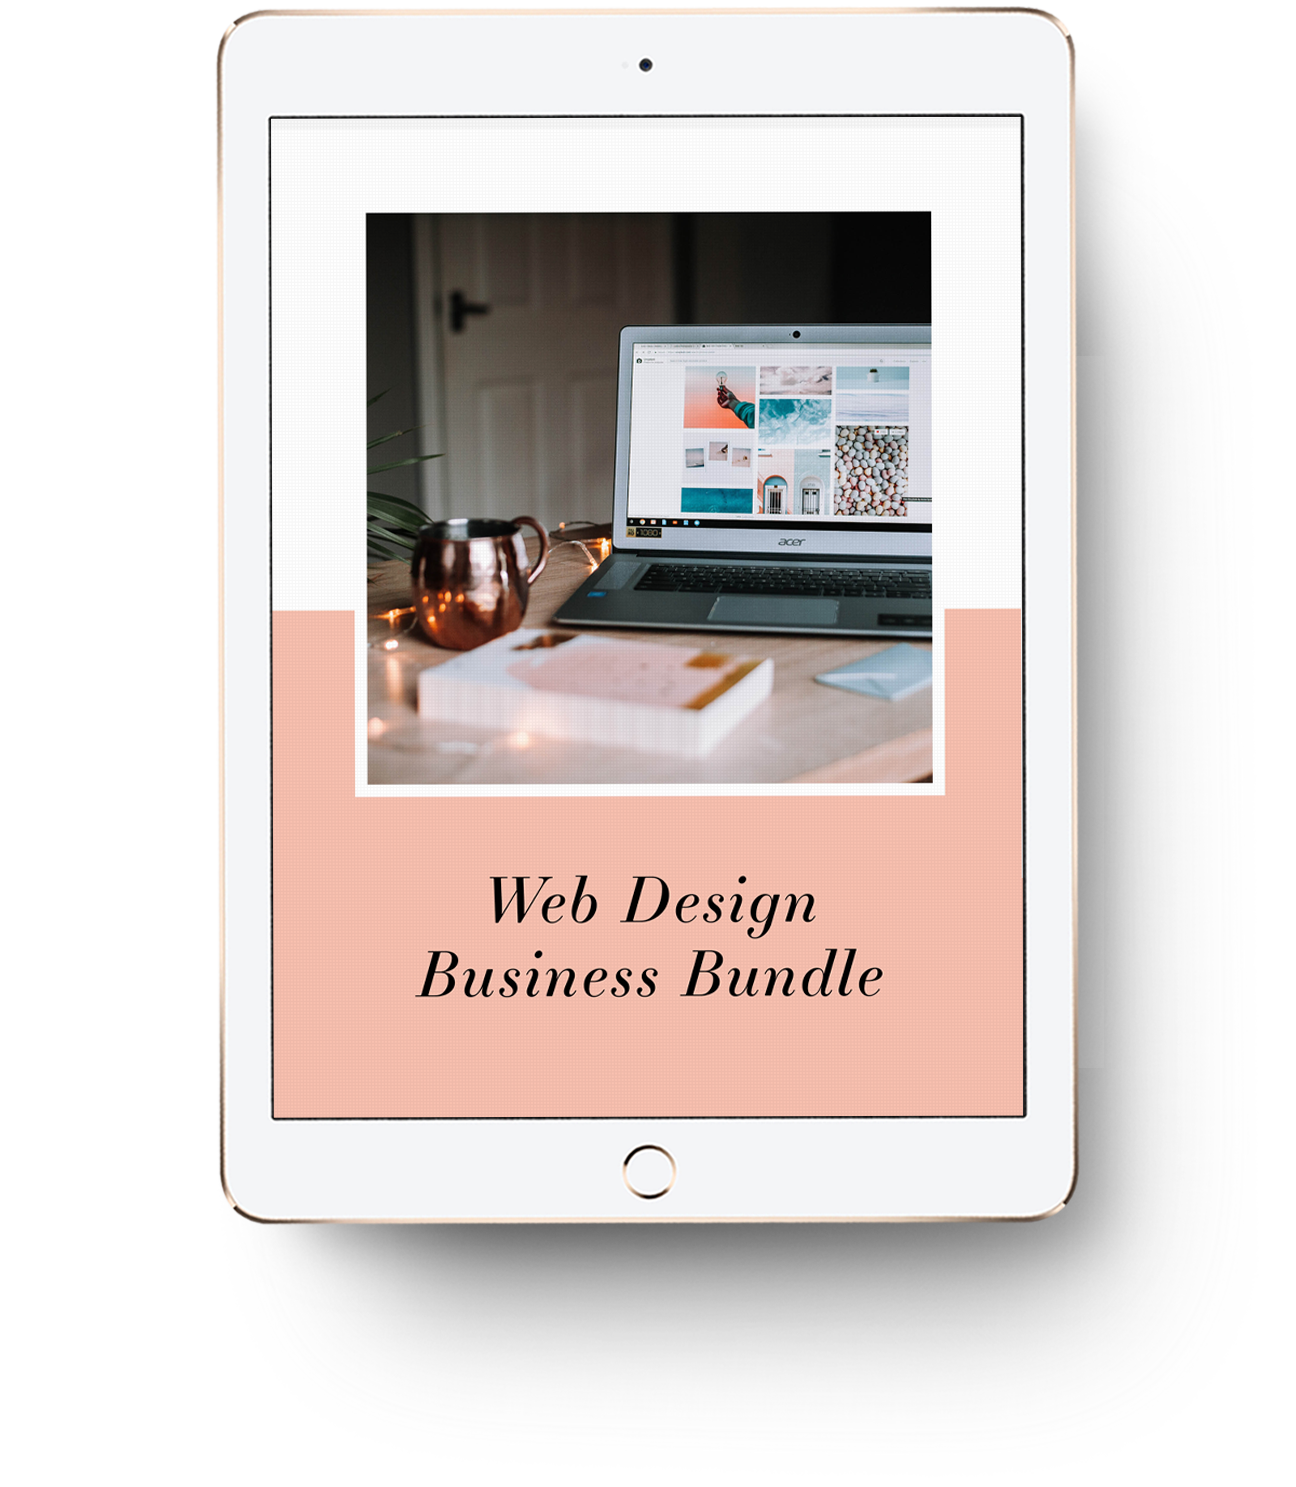 ipad_web design biz bundle_shop thumbnail.png